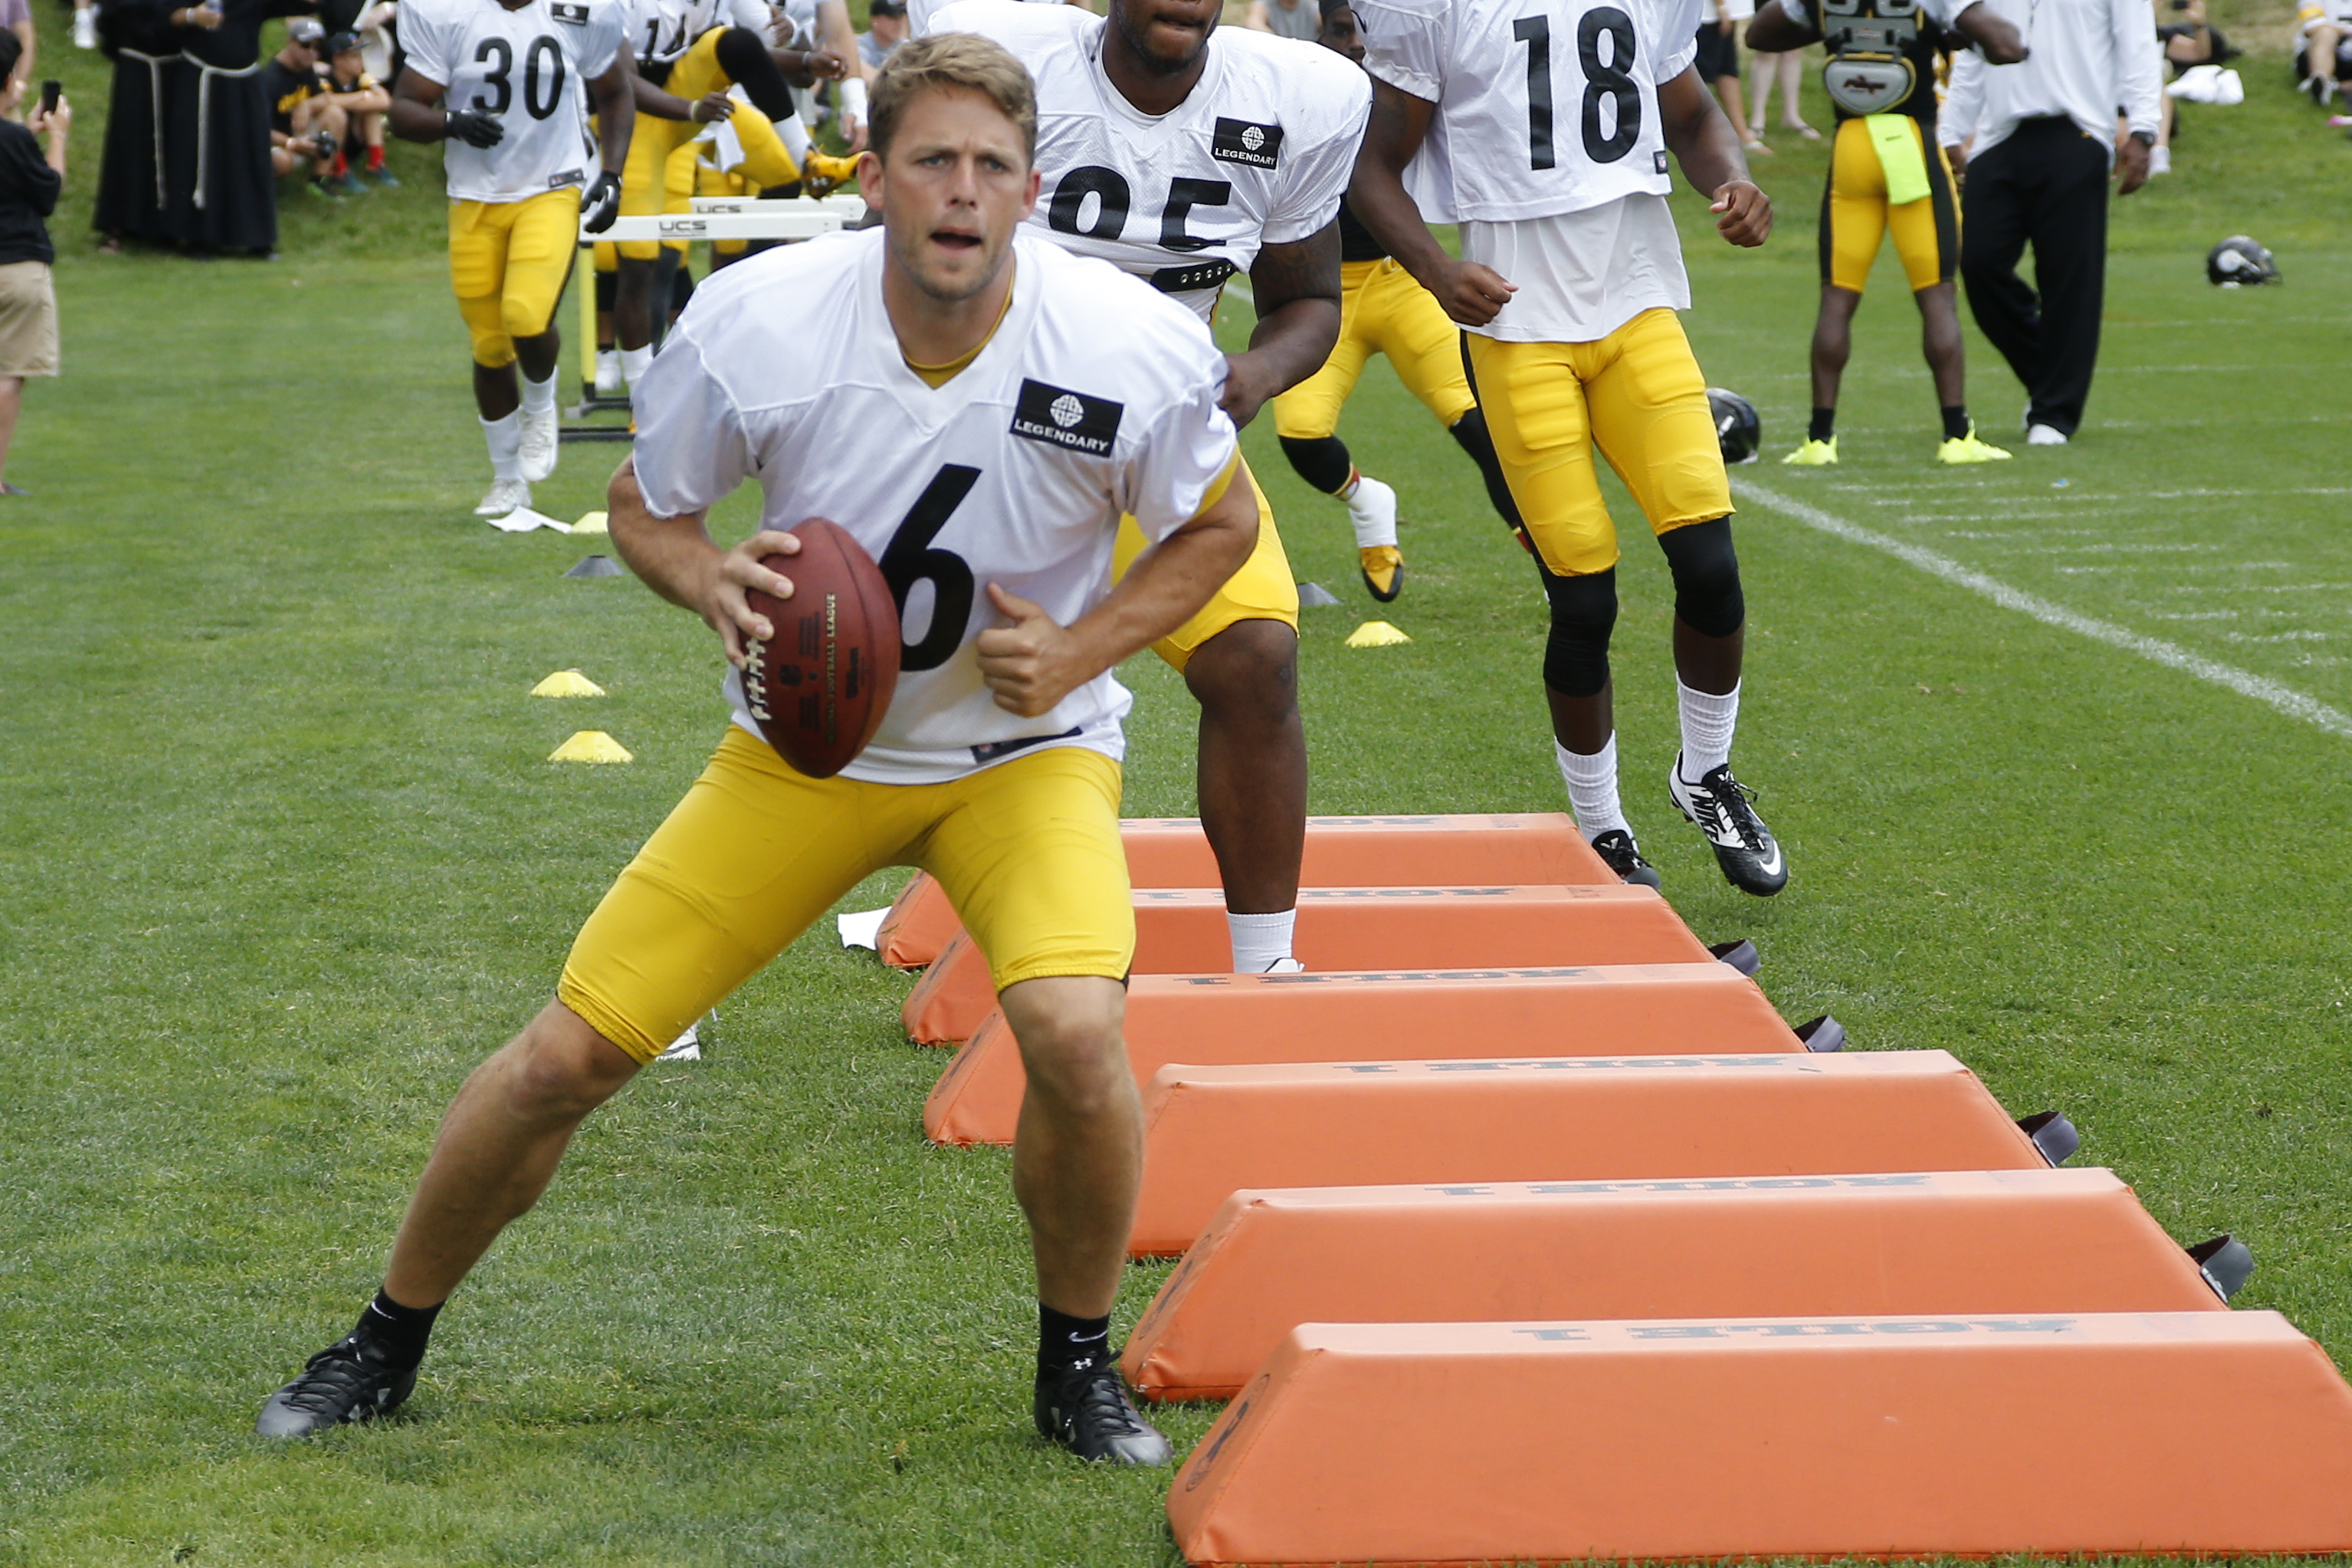 FILE - In this Aug. 1, 2015 file photo, Pittsburgh Steelers kicker Shaun Suisham (6) runs a drill during NFL football training camp in Latrobe, Pa. Suishams lengthy run with the Pittsburgh Steelers is over. It appears the longtime kickers career may be in